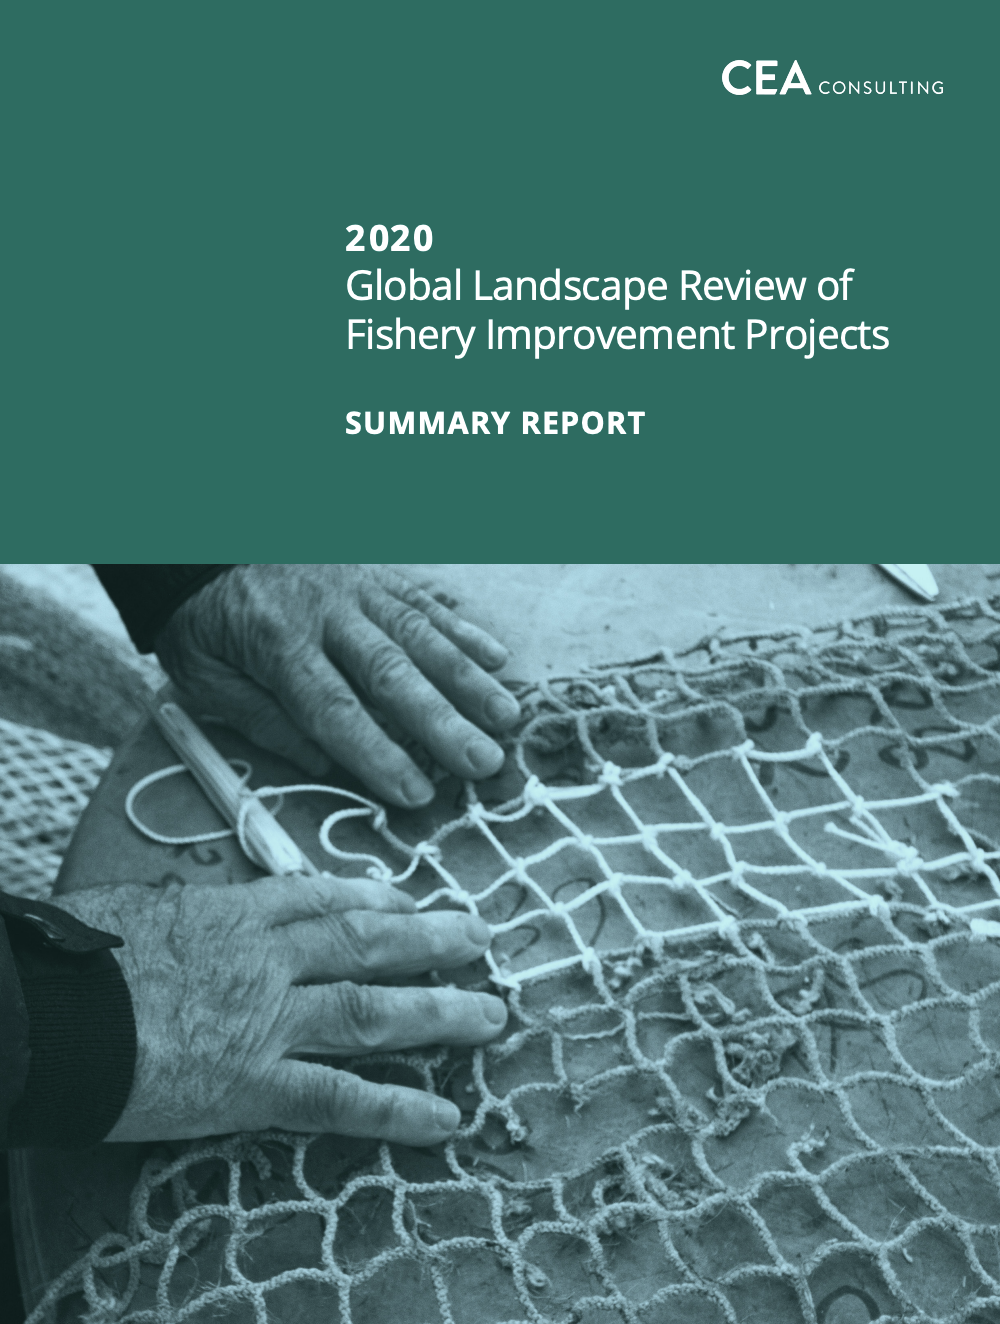 FIP Implementers: Detailed summary of global landscape review of fishery improvement projects